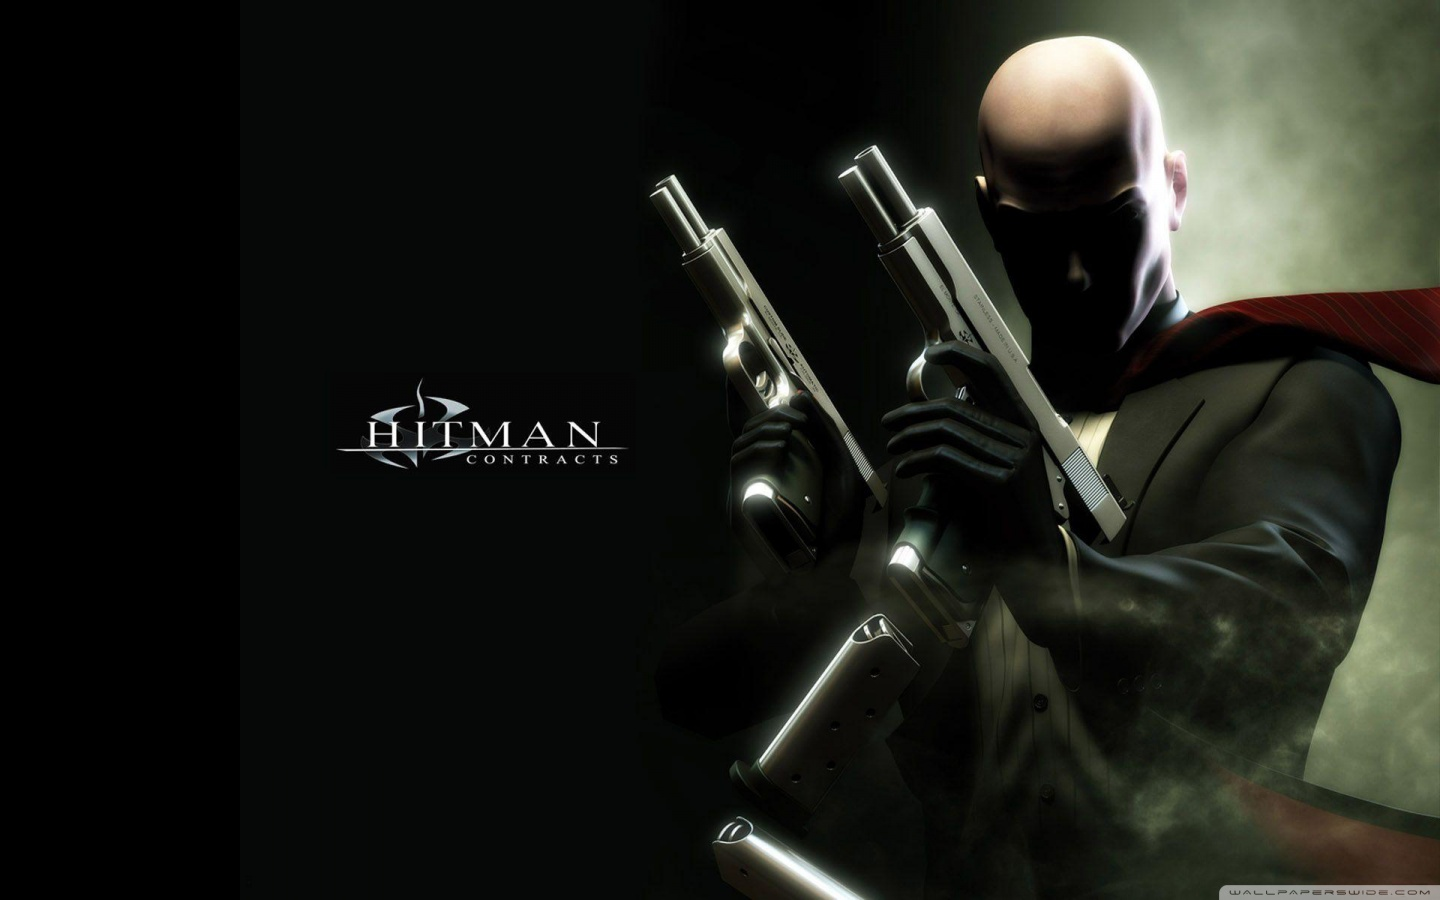 Deanne Morrison hitman wallpaper 1440x900